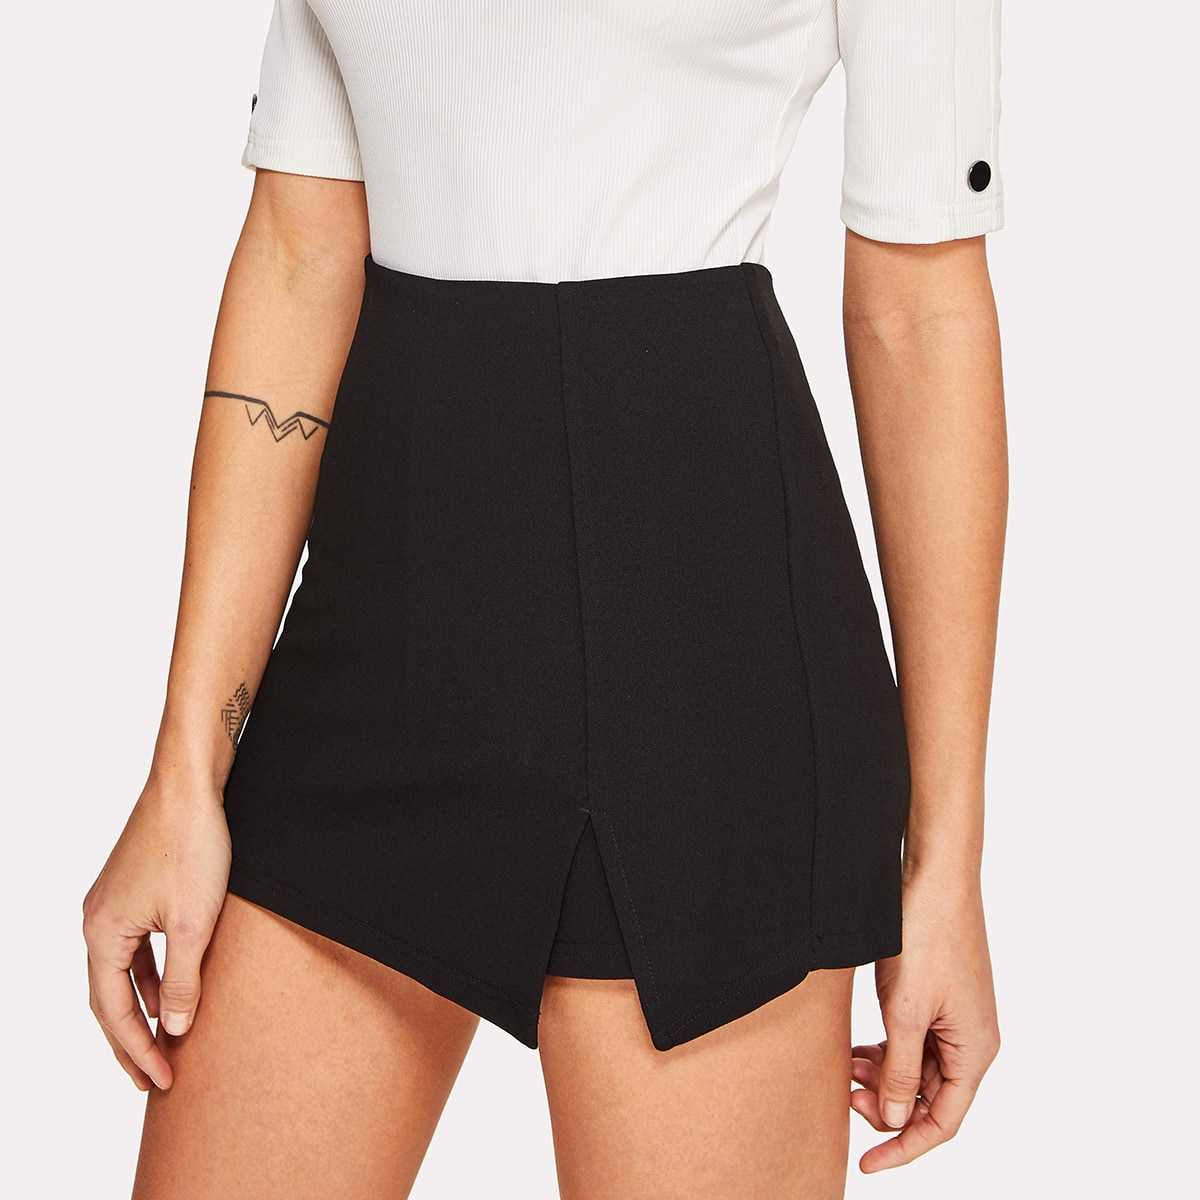 Split Front Solid Skirt Shorts in Black by ROMWE on GOOFASH